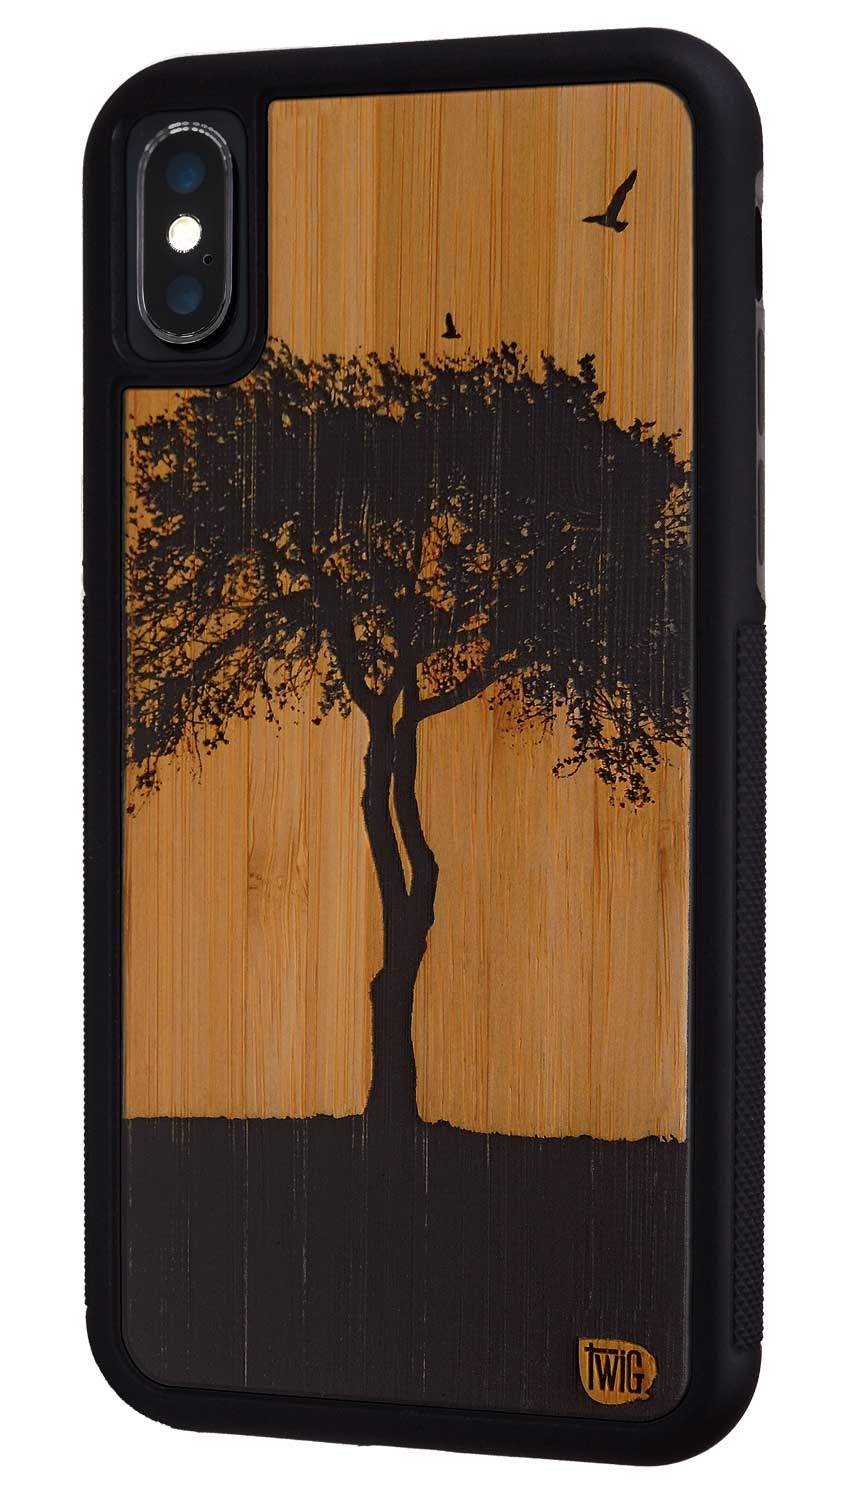 The One Tree - Case for iPhone X/XS/Max/XR, Case for iPhone X/XS/Max/XR - Twig Case Co.